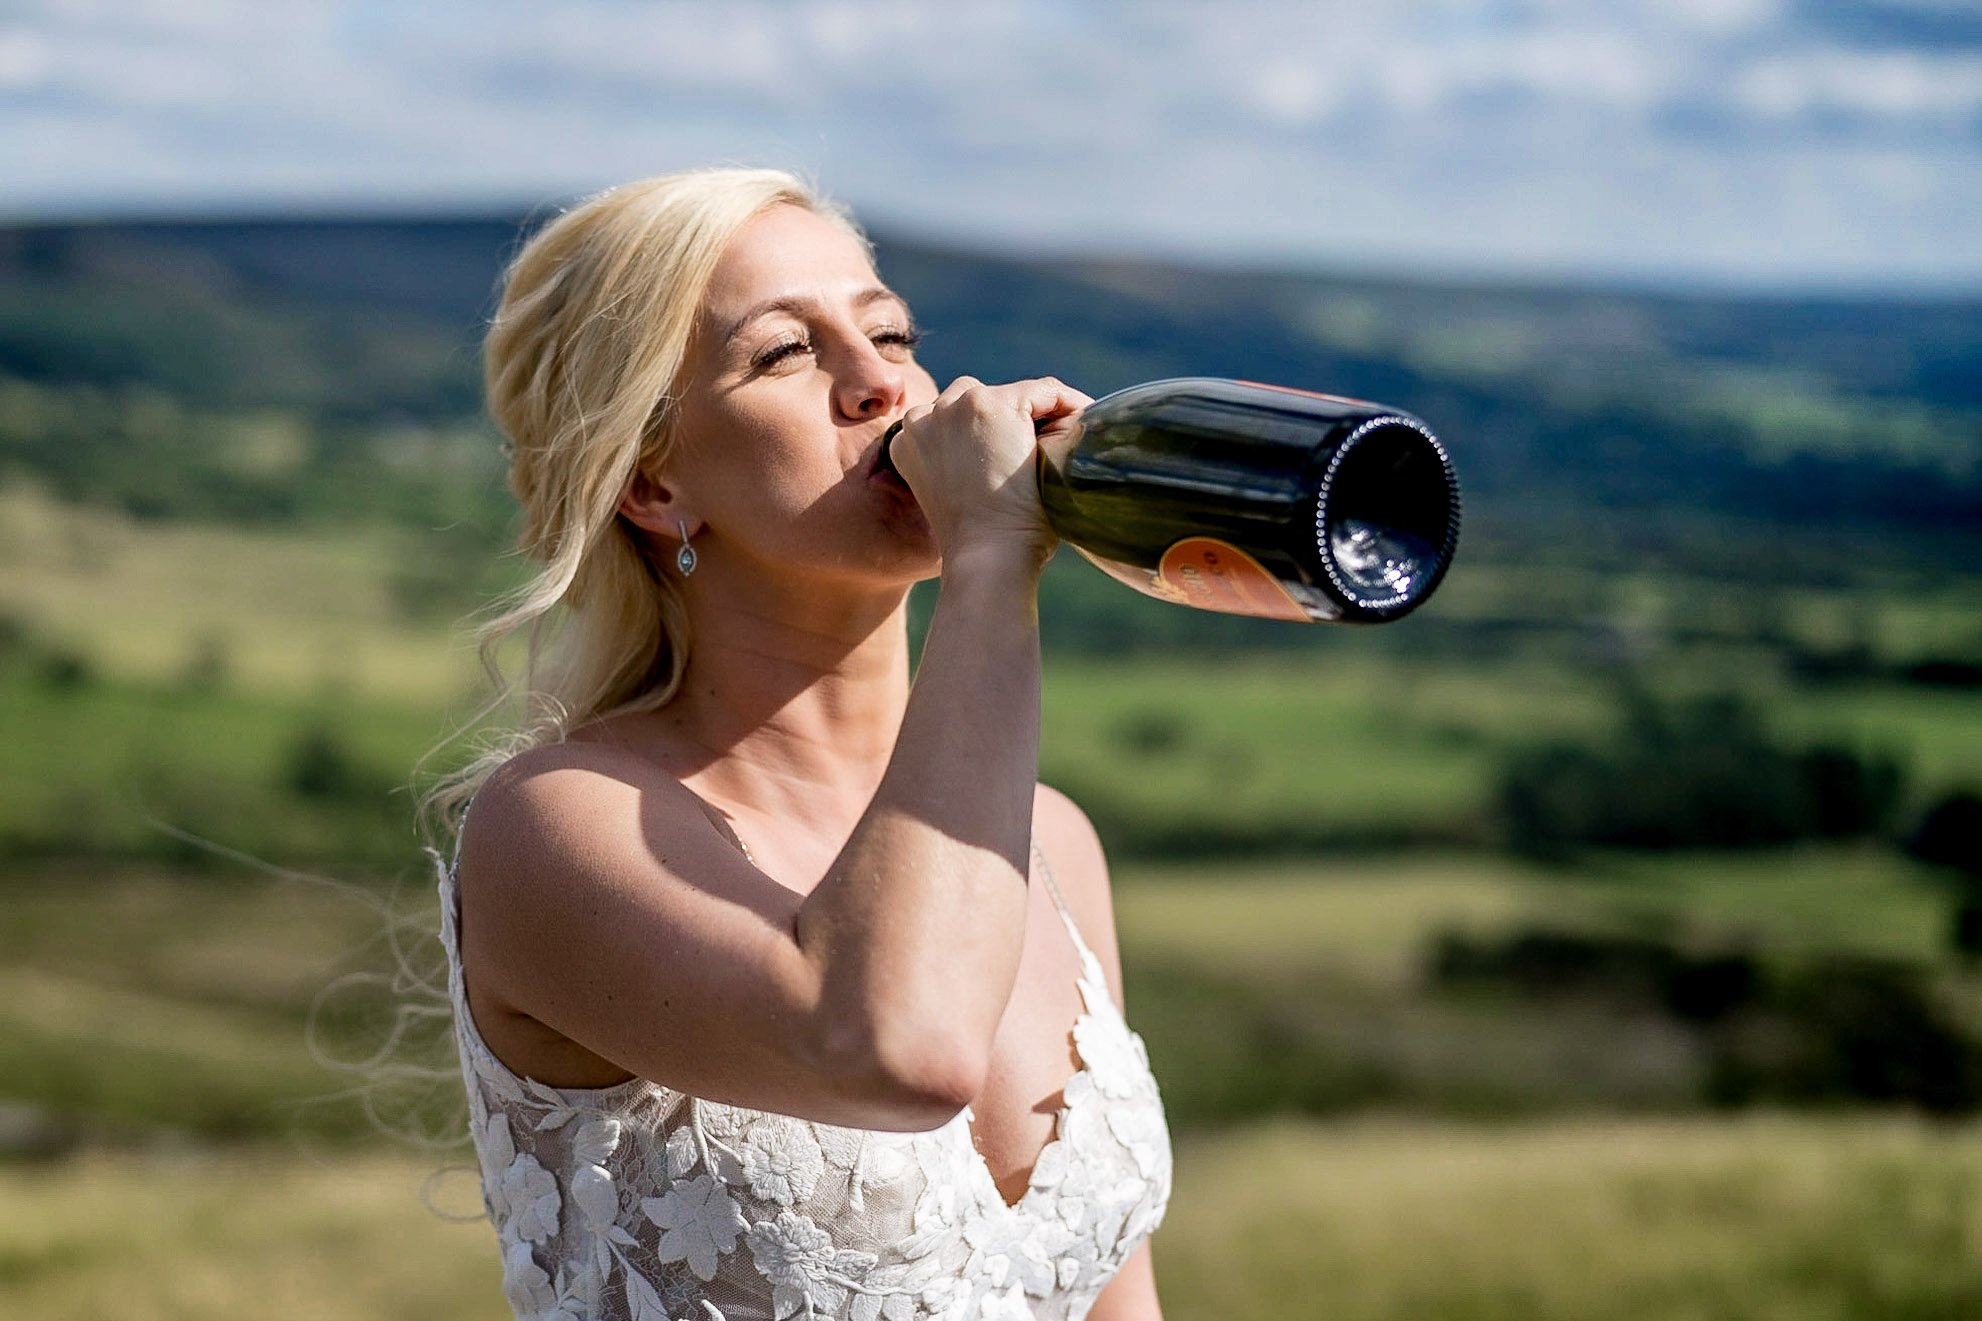 YFFUK Your Favourite Frame Mwasuku Peak District Castleton Mam Tor bride drinking from the champagne bottle celebrating the happiness